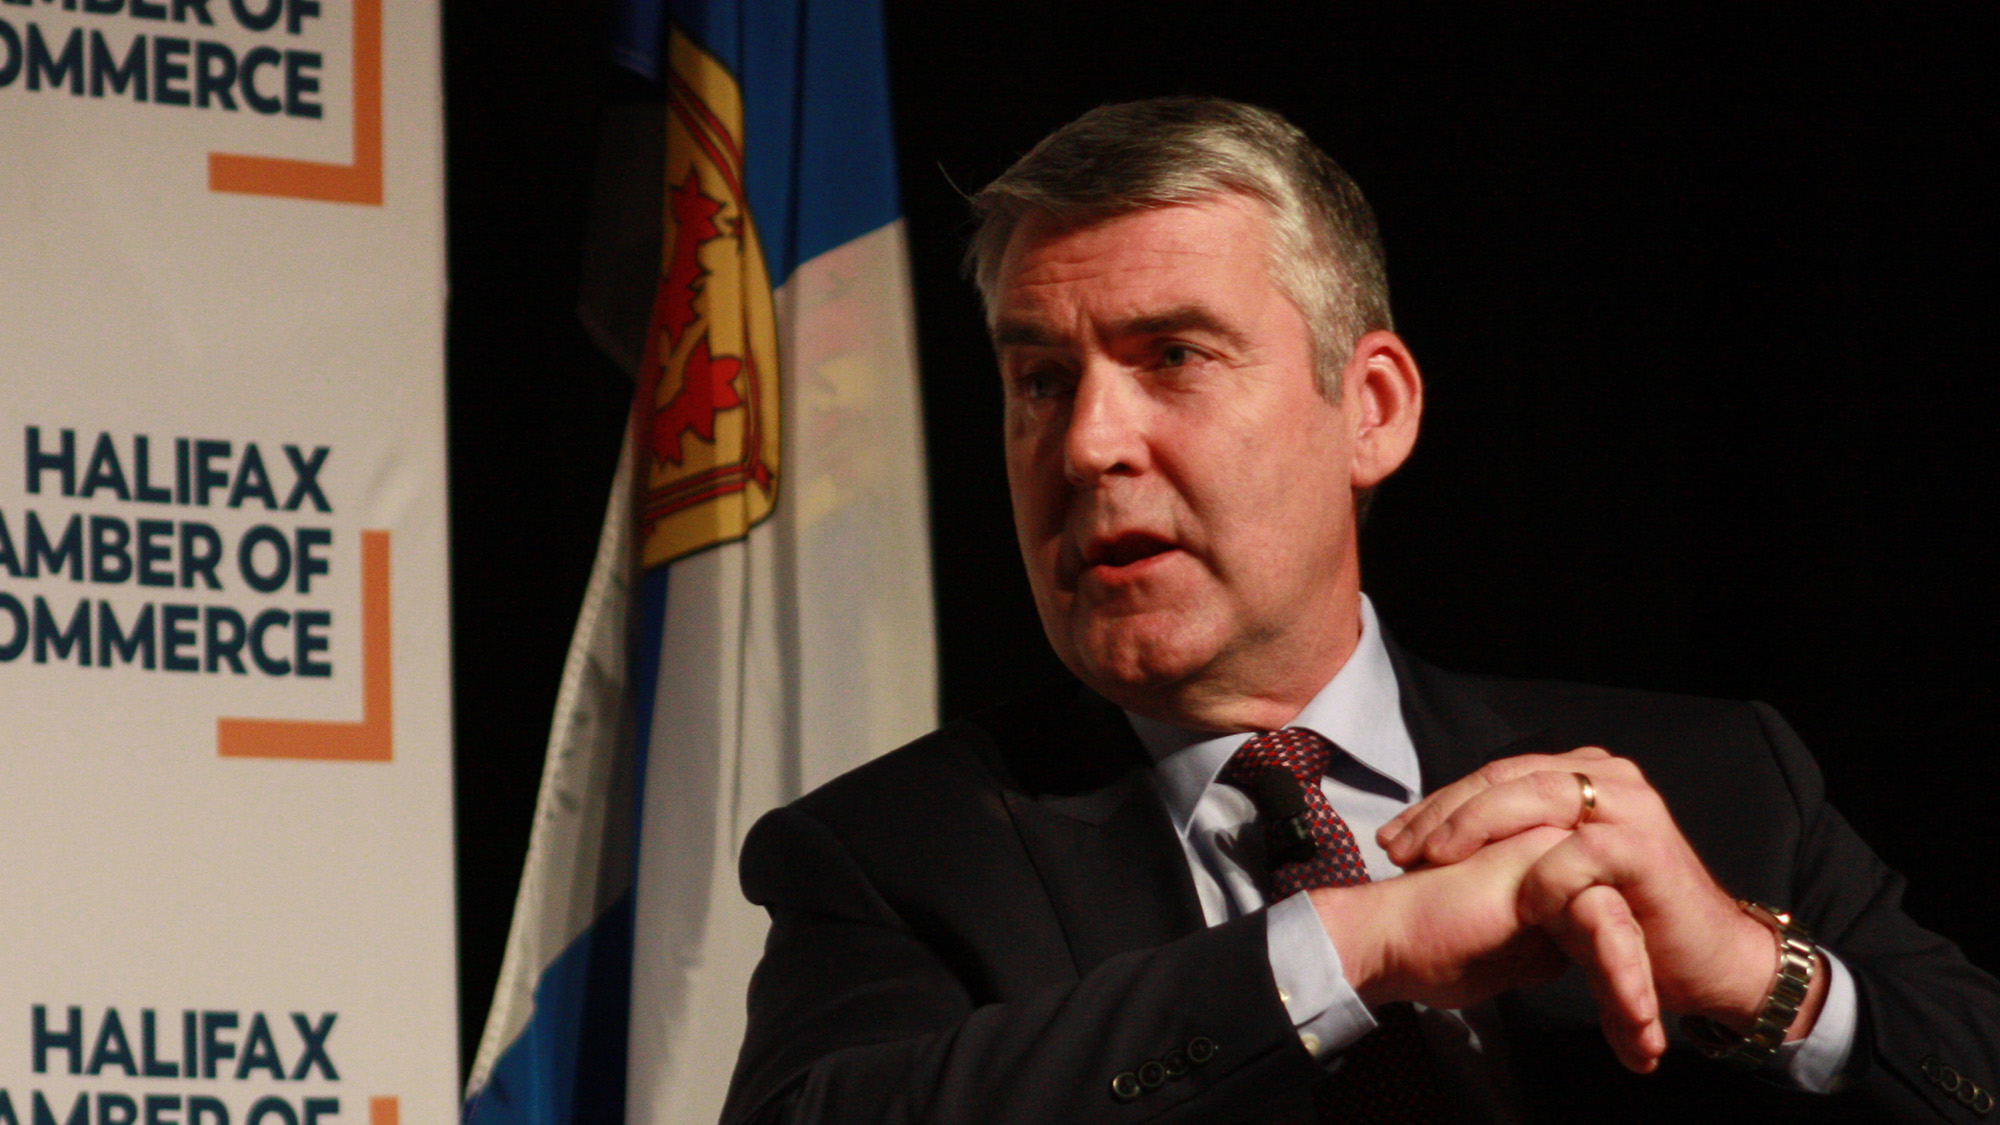 Premier Stephen McNeil speaks at his annual State of Nova Scotia address. This year's event was held at the Halifax Convention Centre.